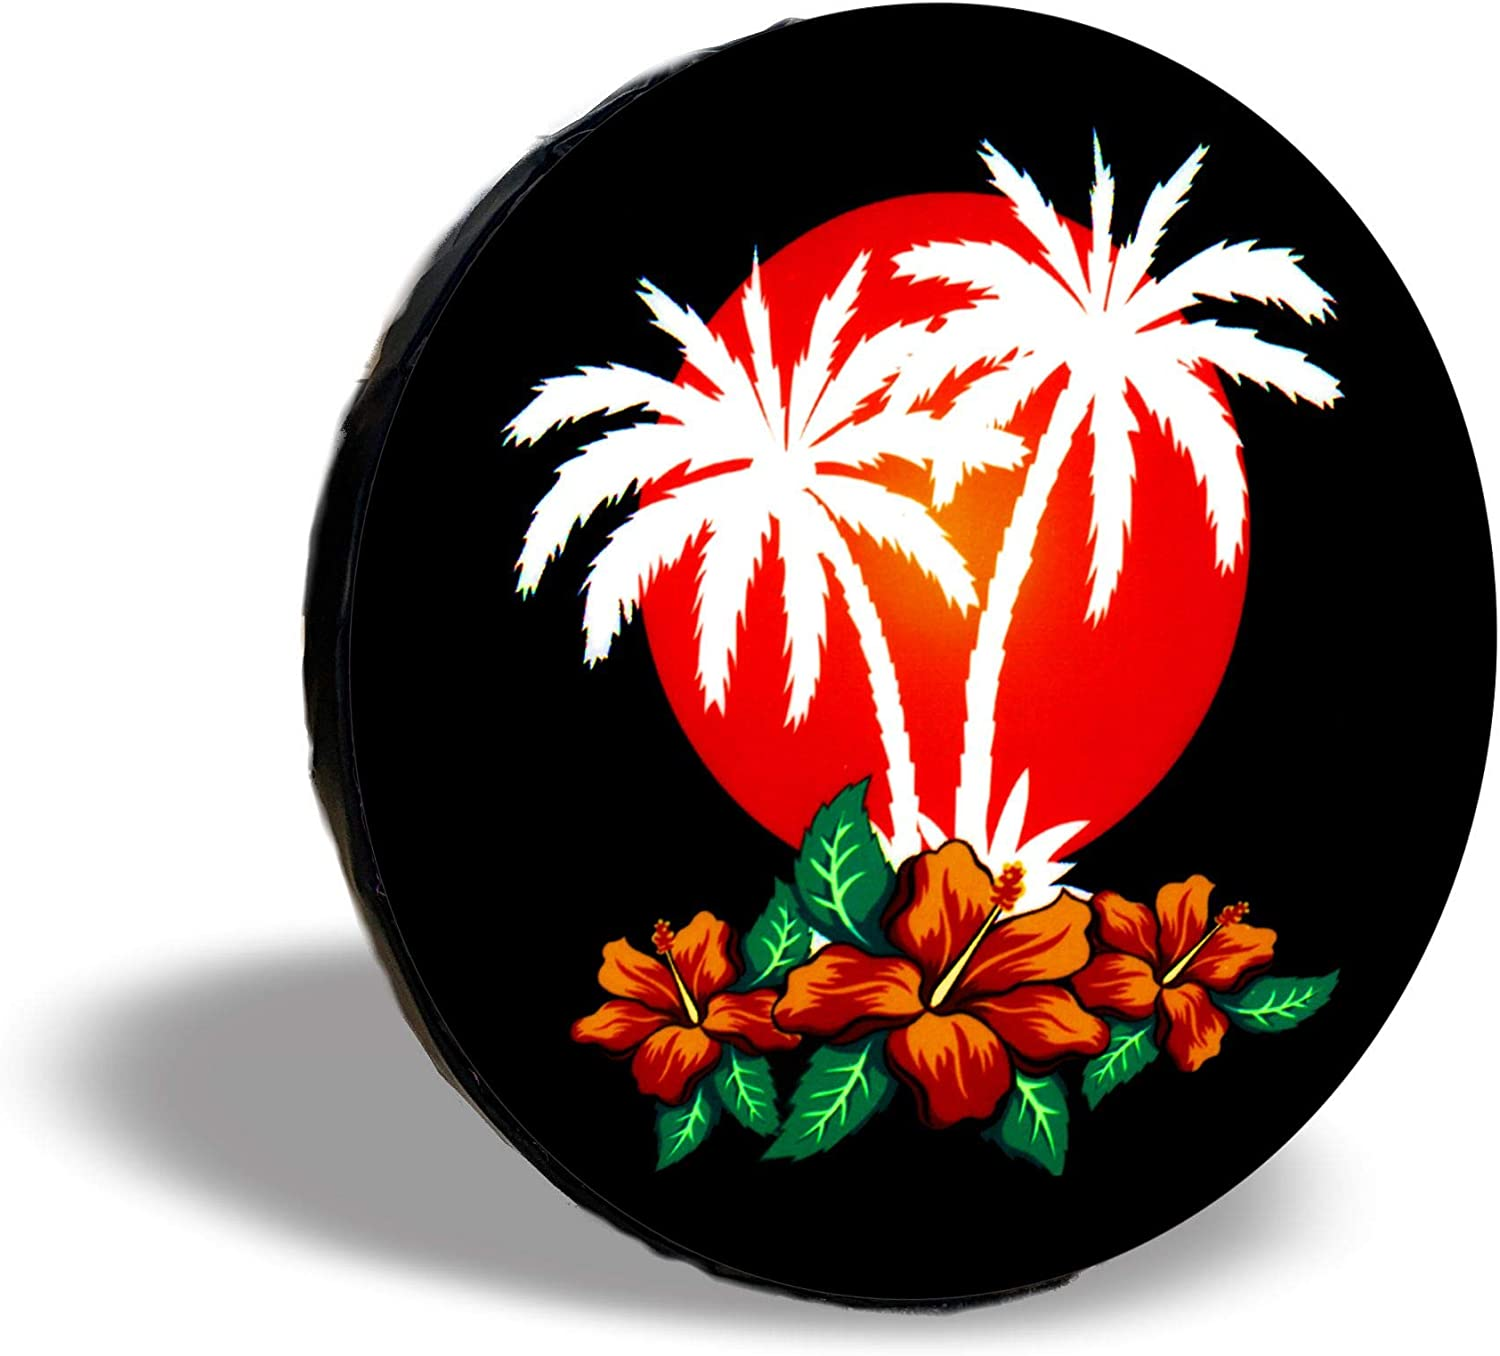 TIRE COVER CENTRAL Aloha Purple Spare Sunset Cover Max 74% OFF TIre Direct sale of manufacturer Hibiscus